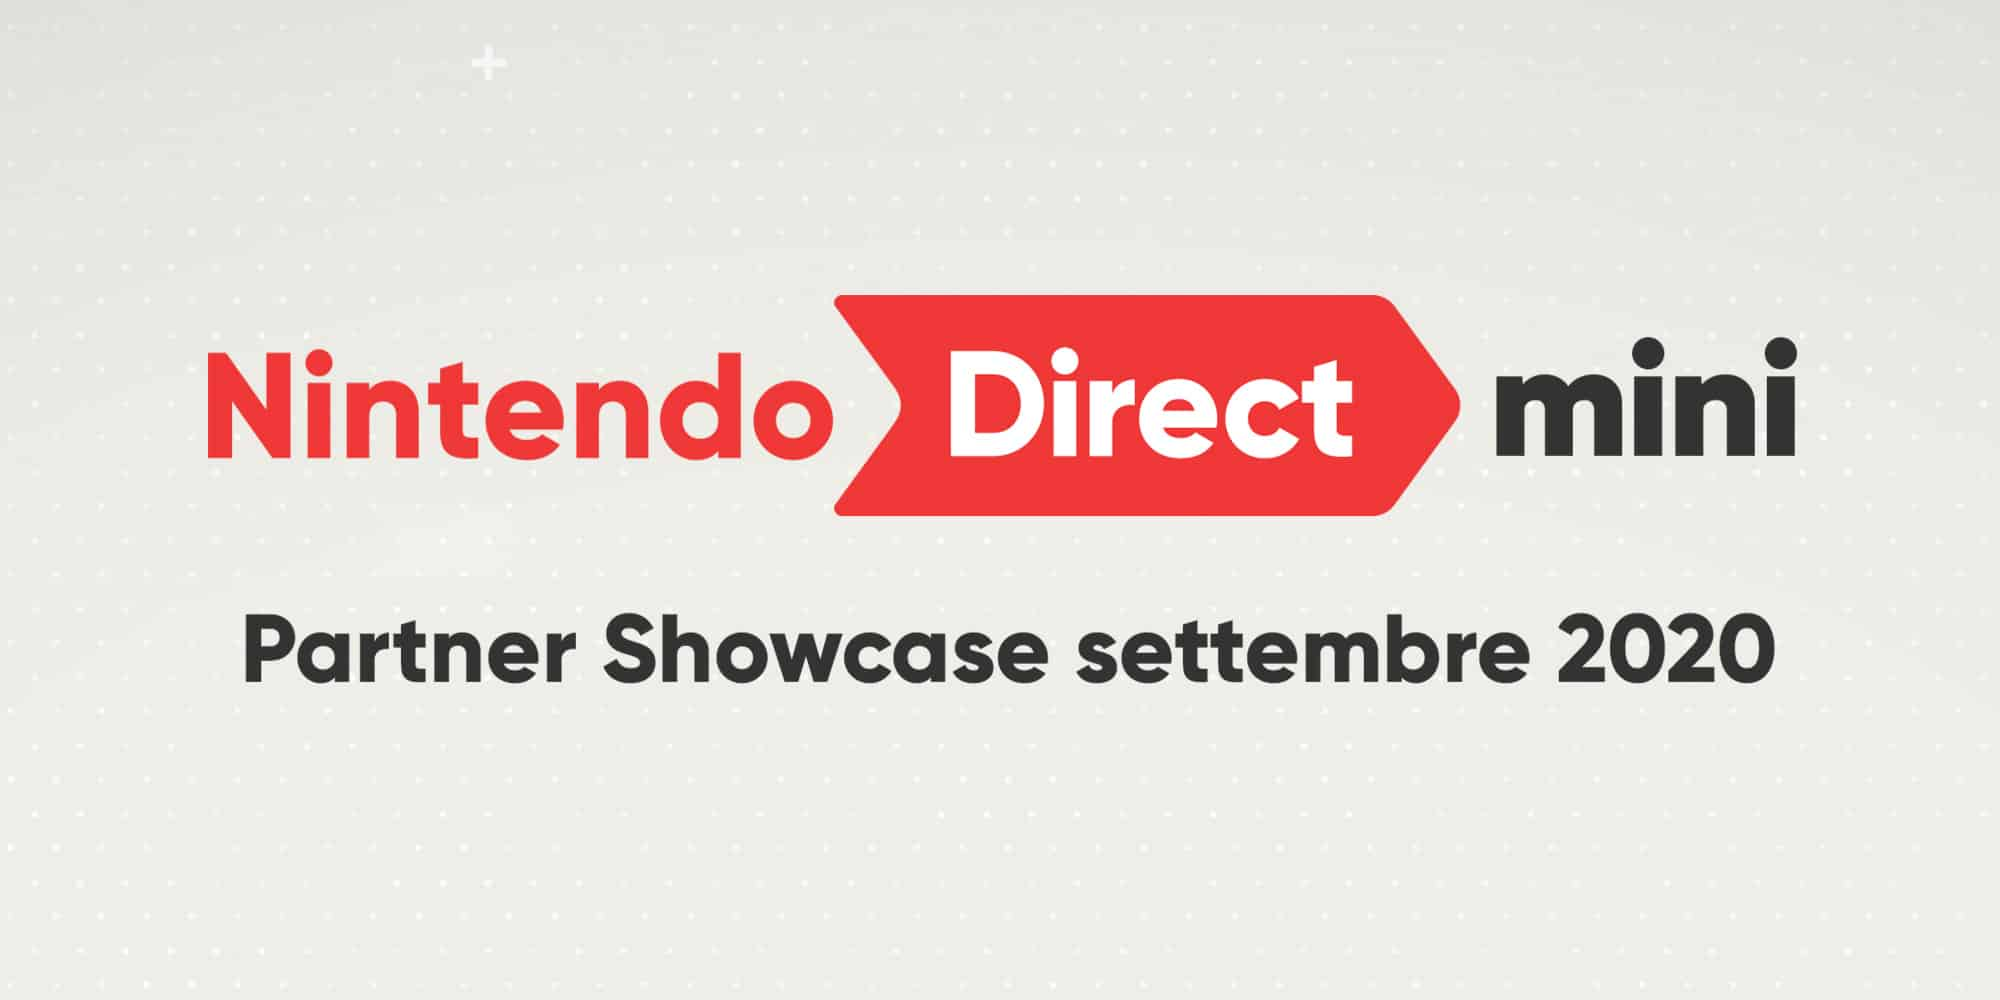 Nintendo Direct mini settembre